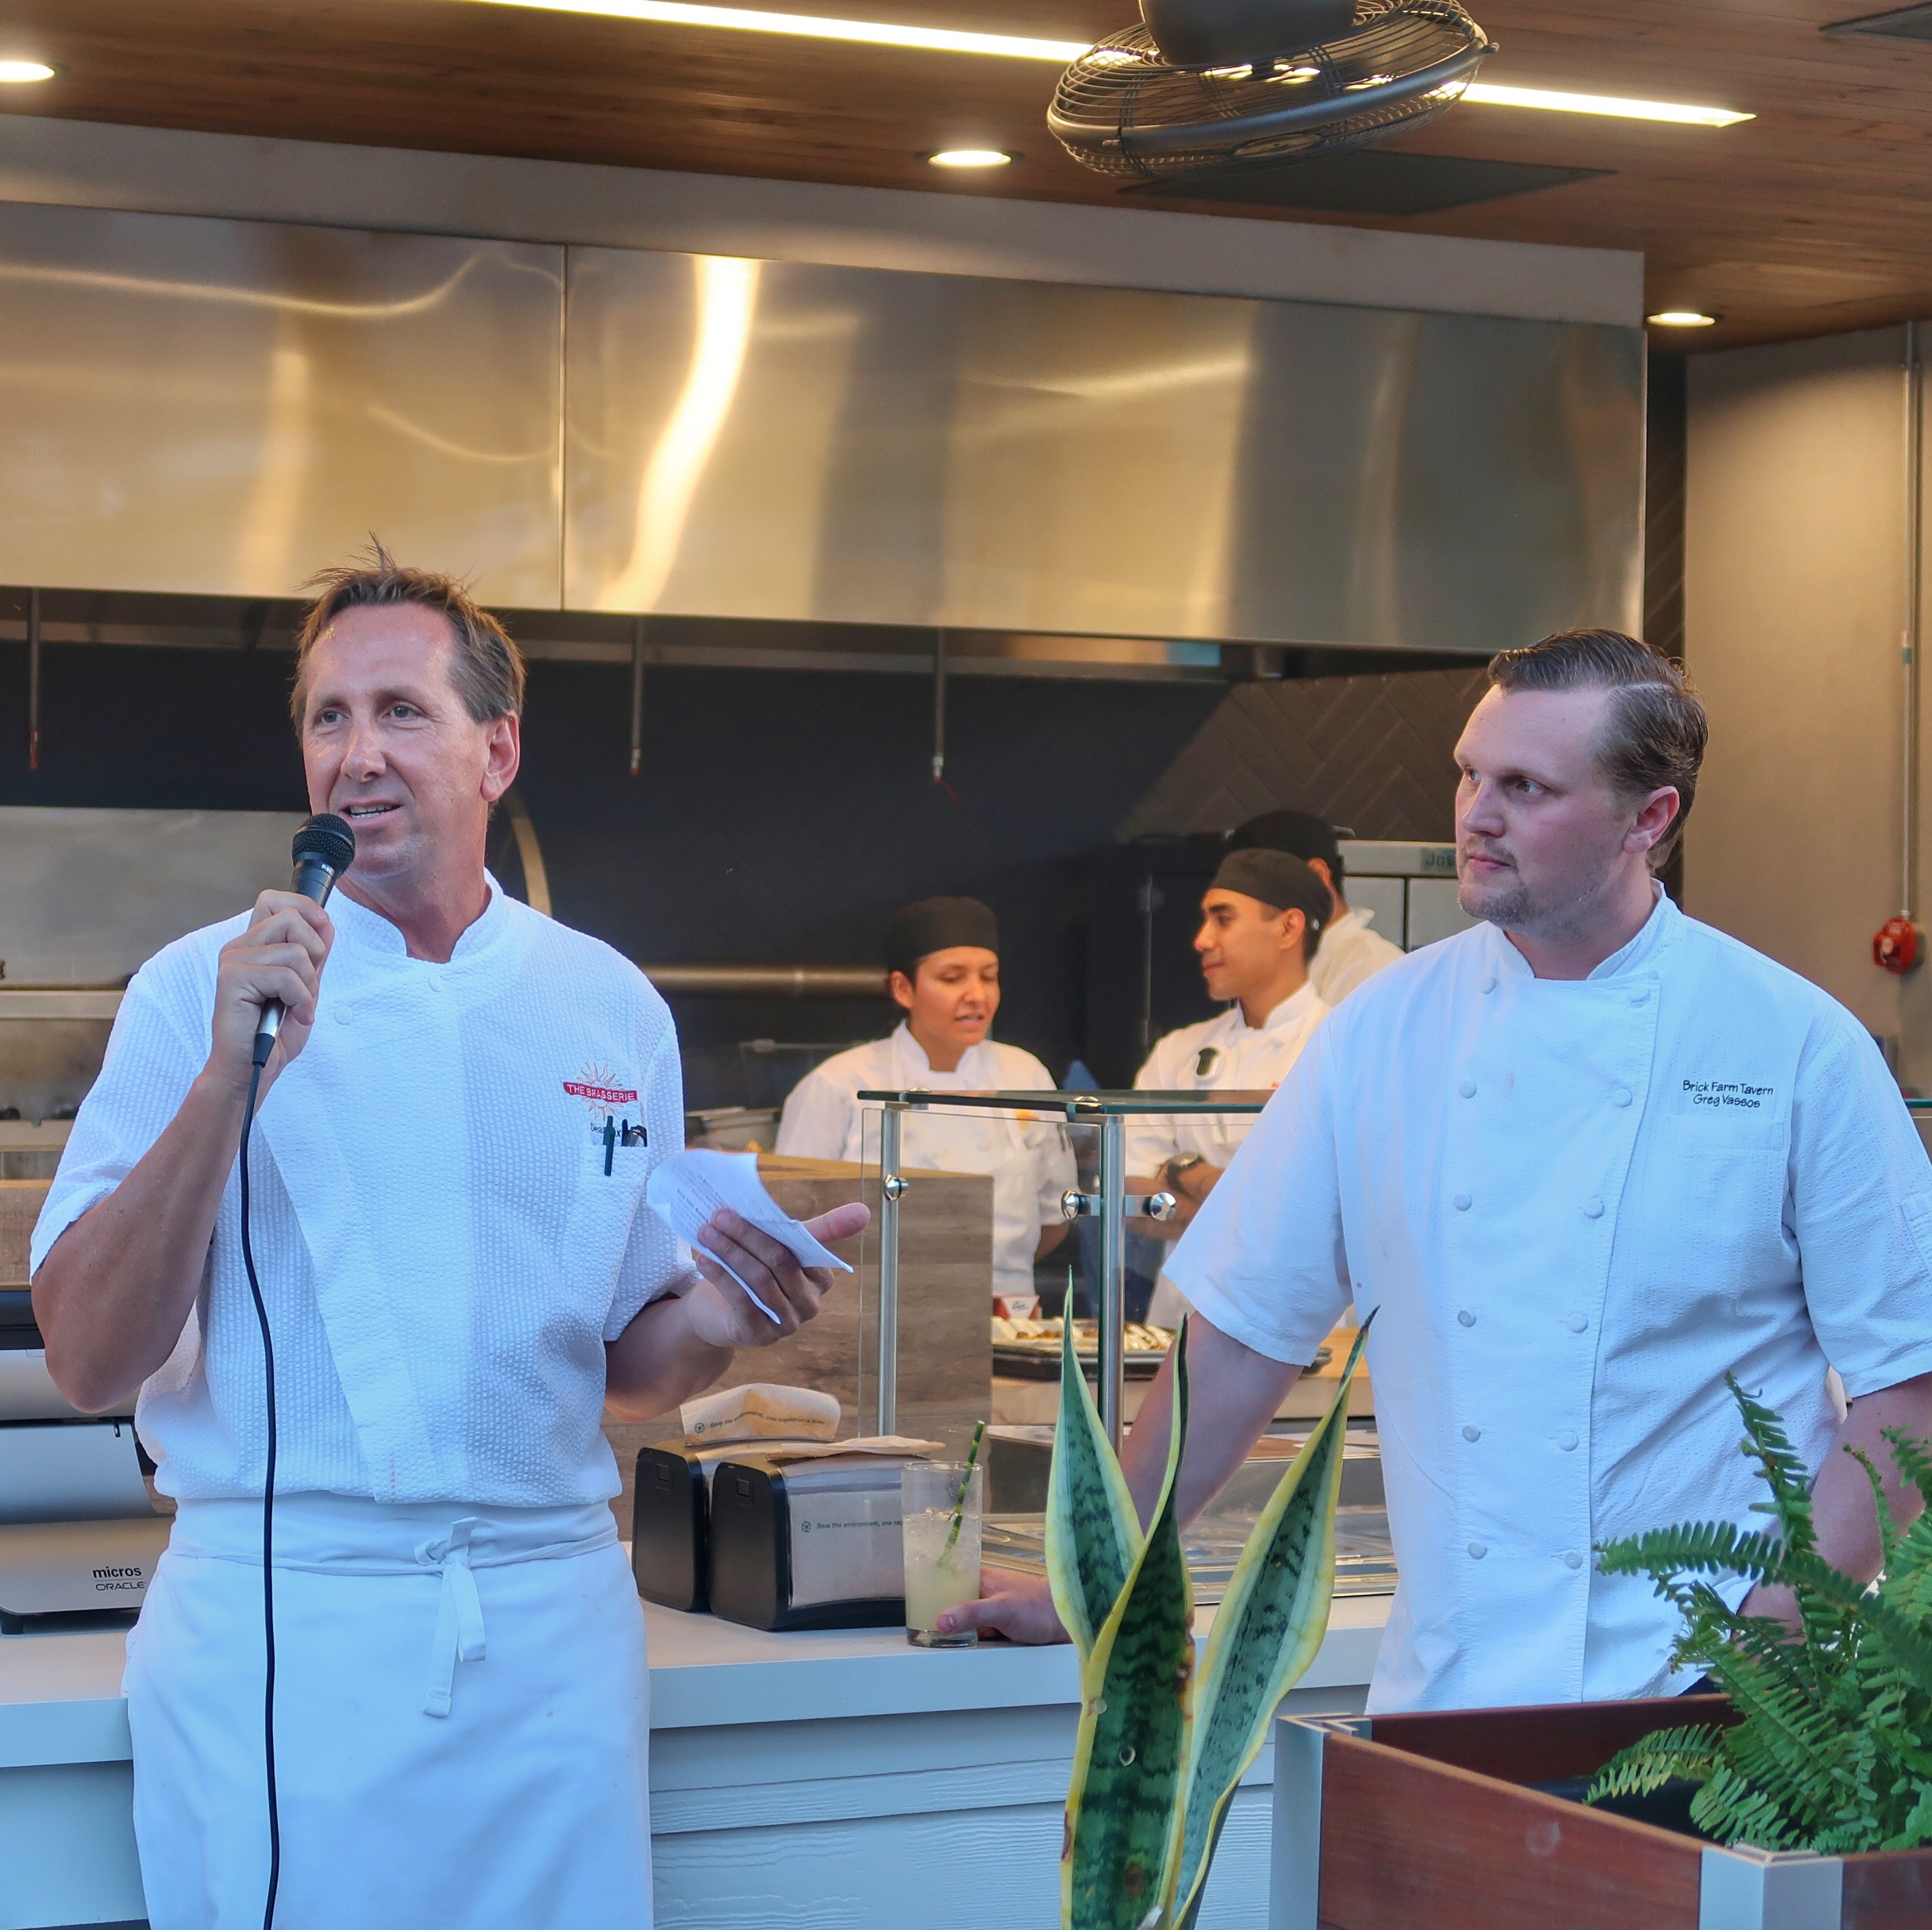 The Brasserie's Consultant Chef Dean Max welcomes guests as Chef Greg Vassos looks on